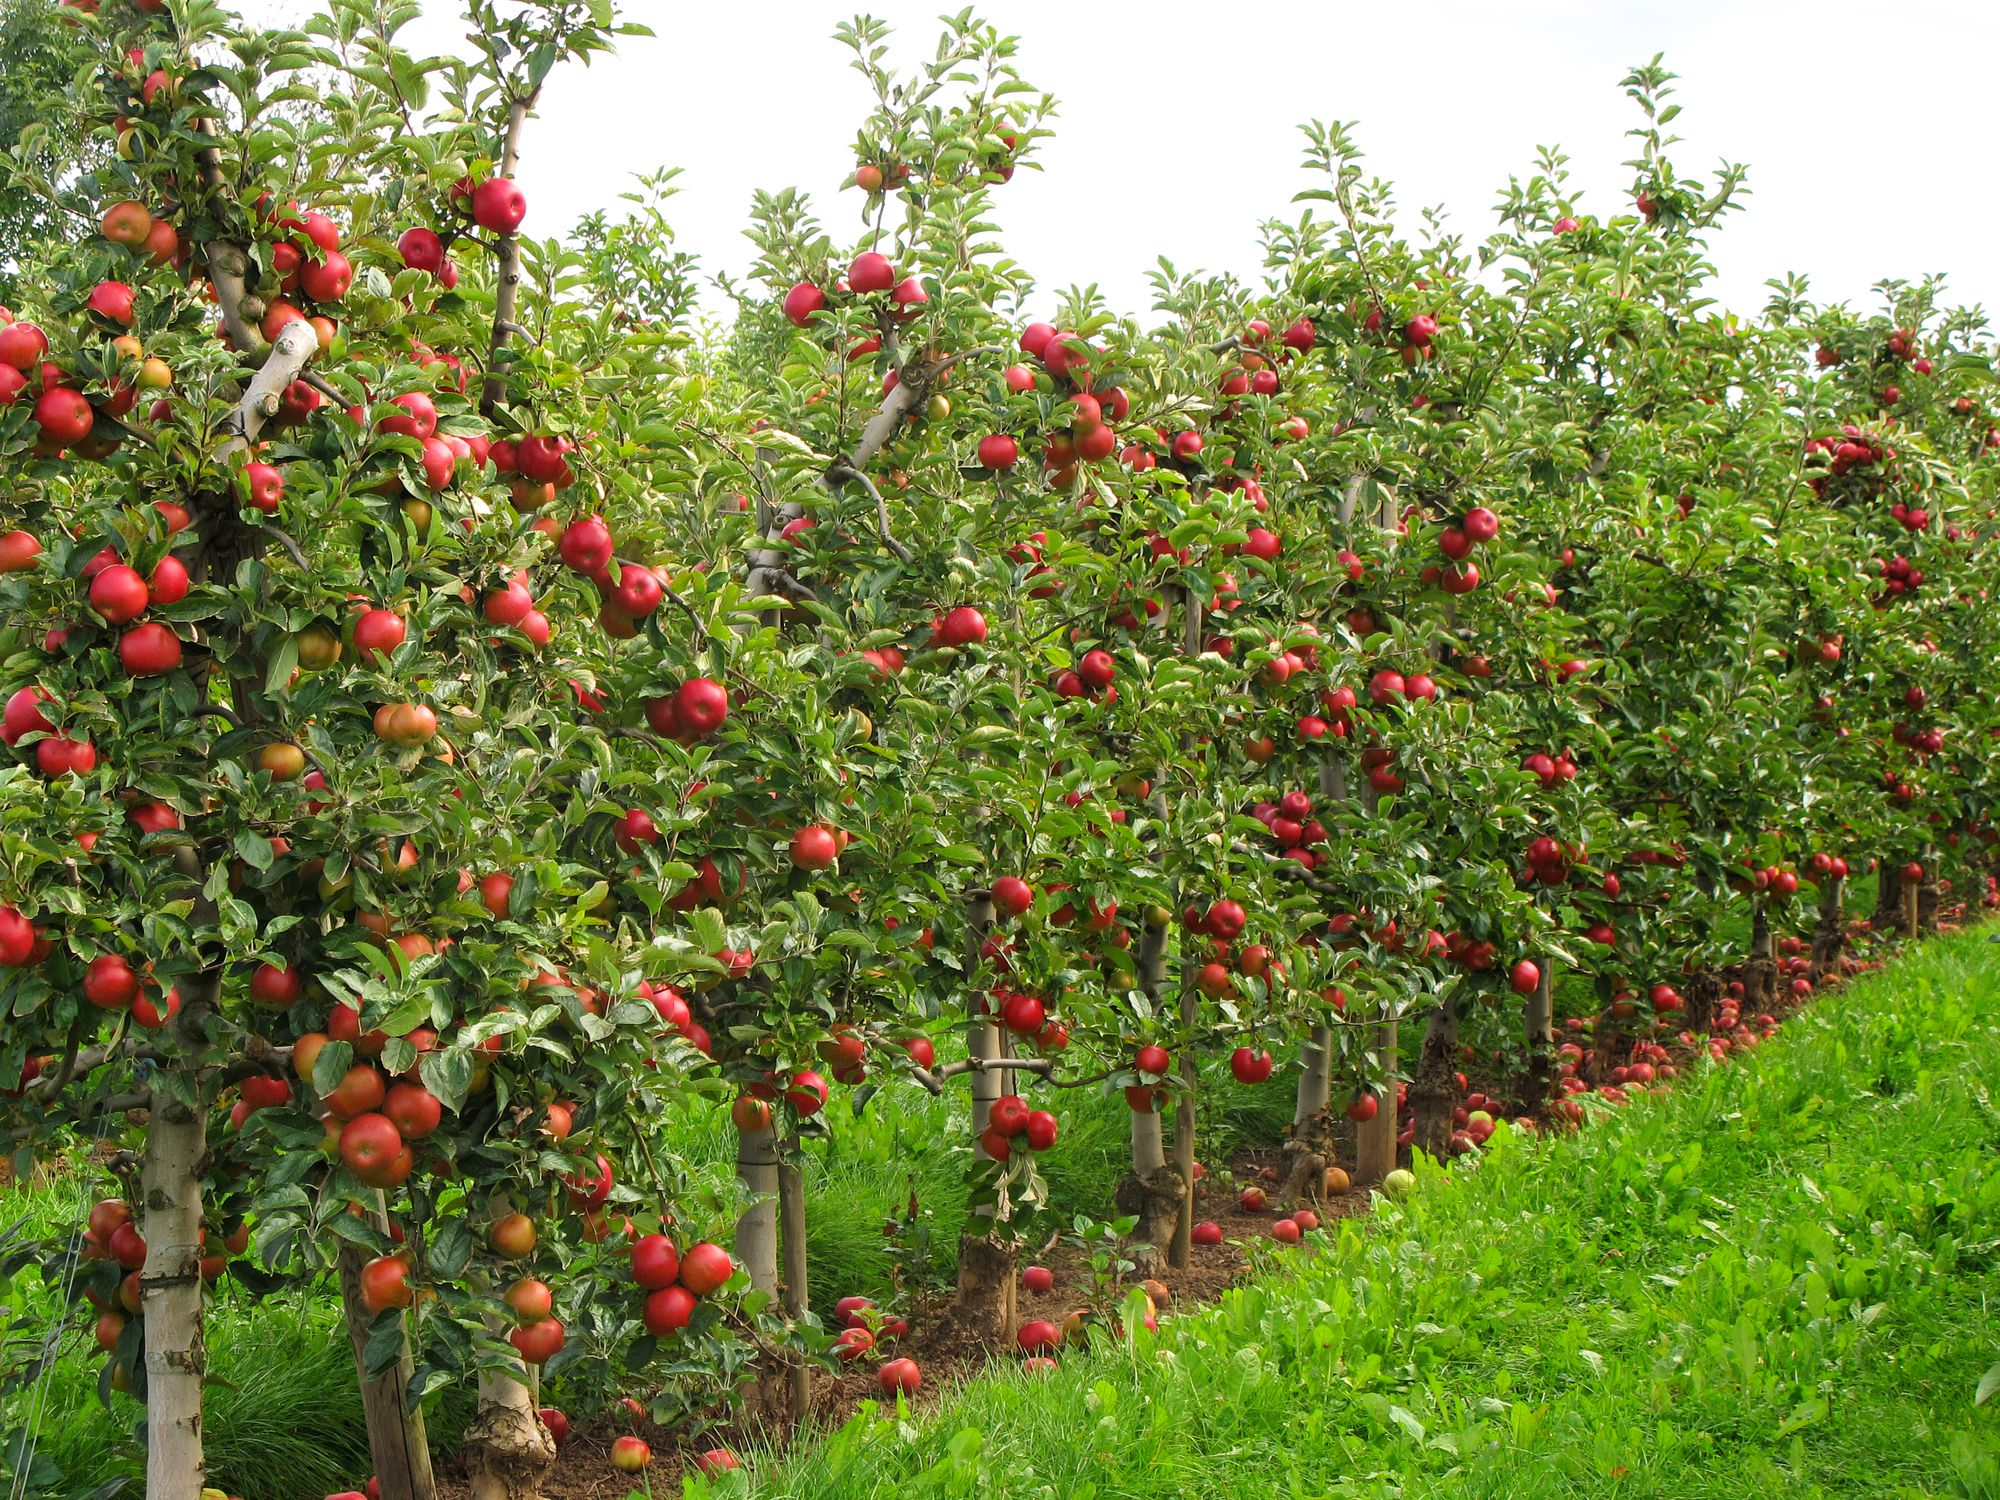 Dwarf apple trees in a row.